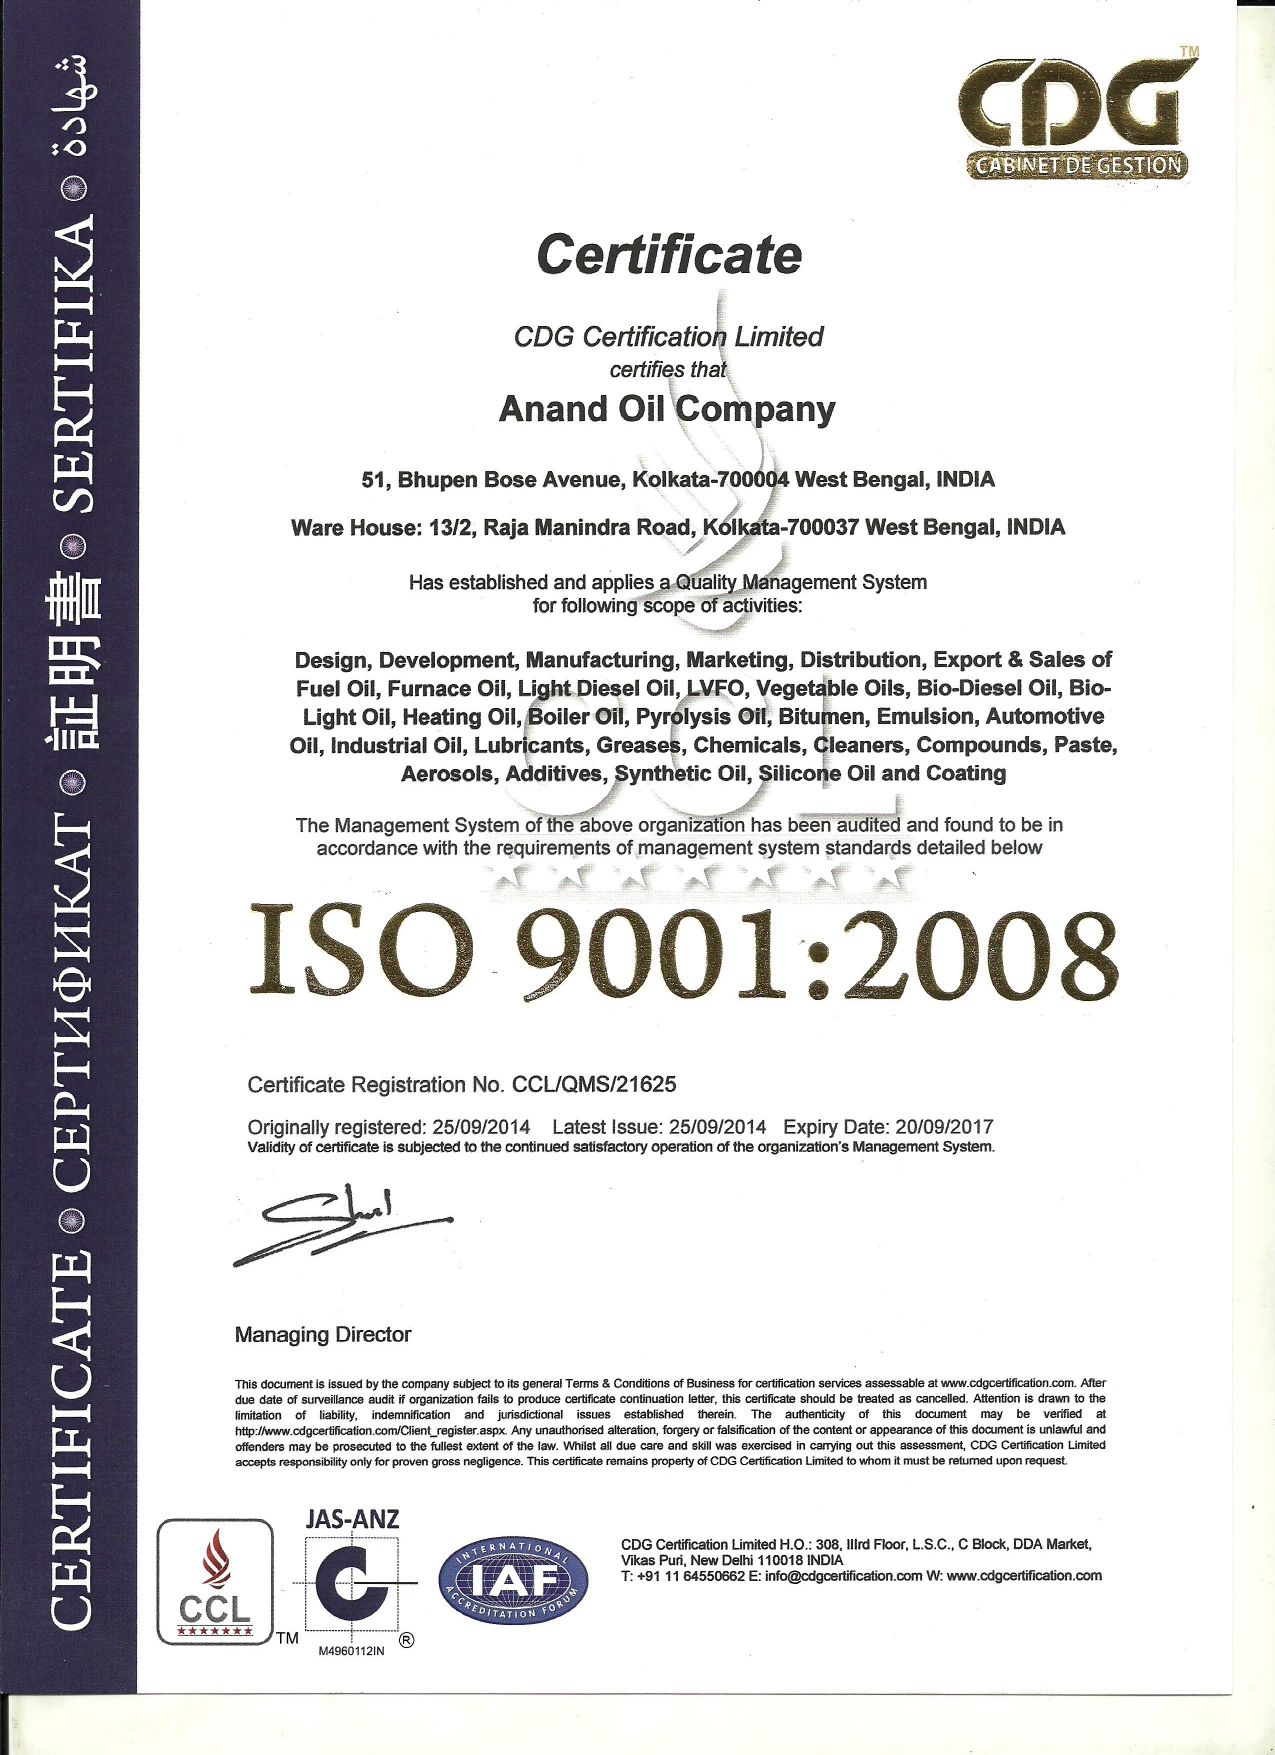 ISO 9000-2008 Certificate